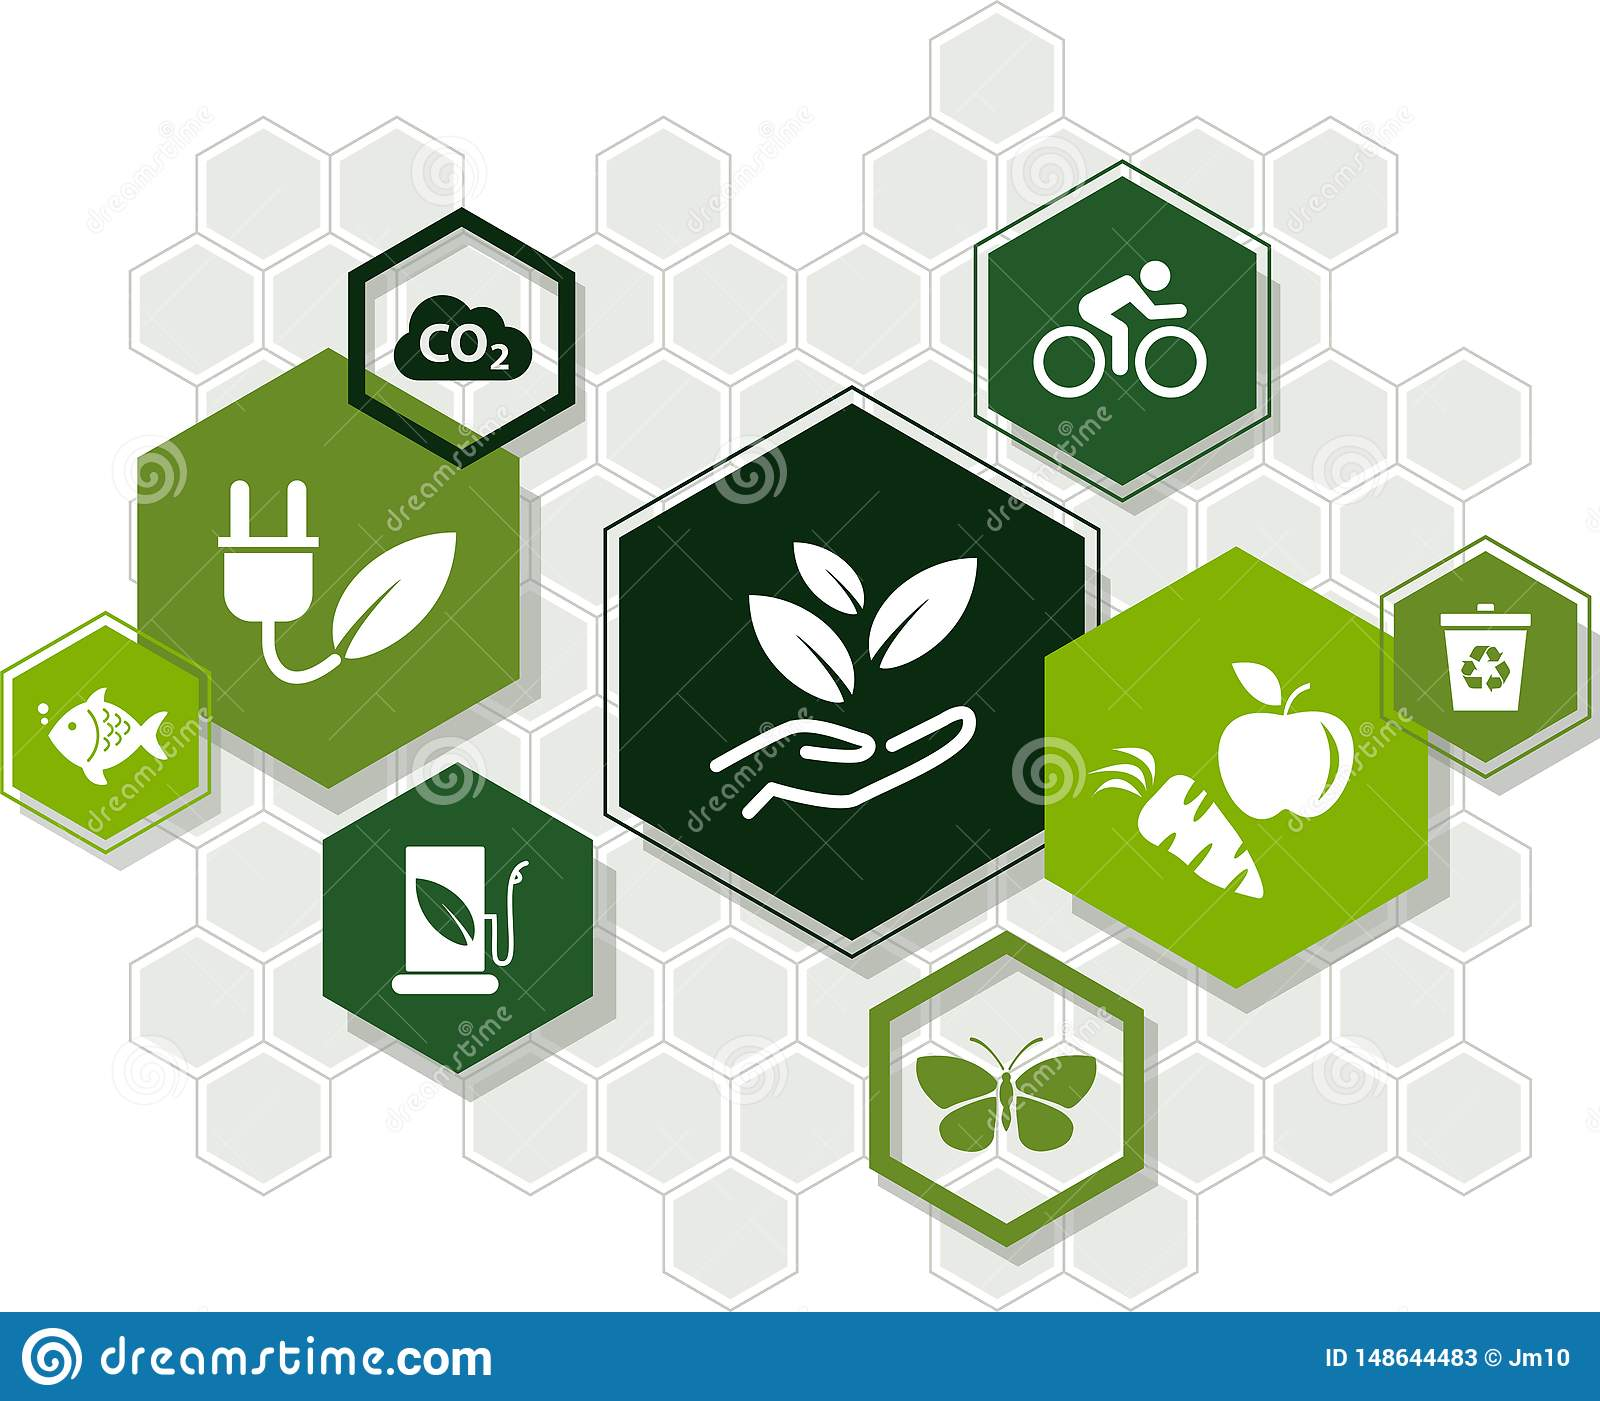 Sustainability icon concept: ecology, green energy, recycling, environmental protection – vector illustration